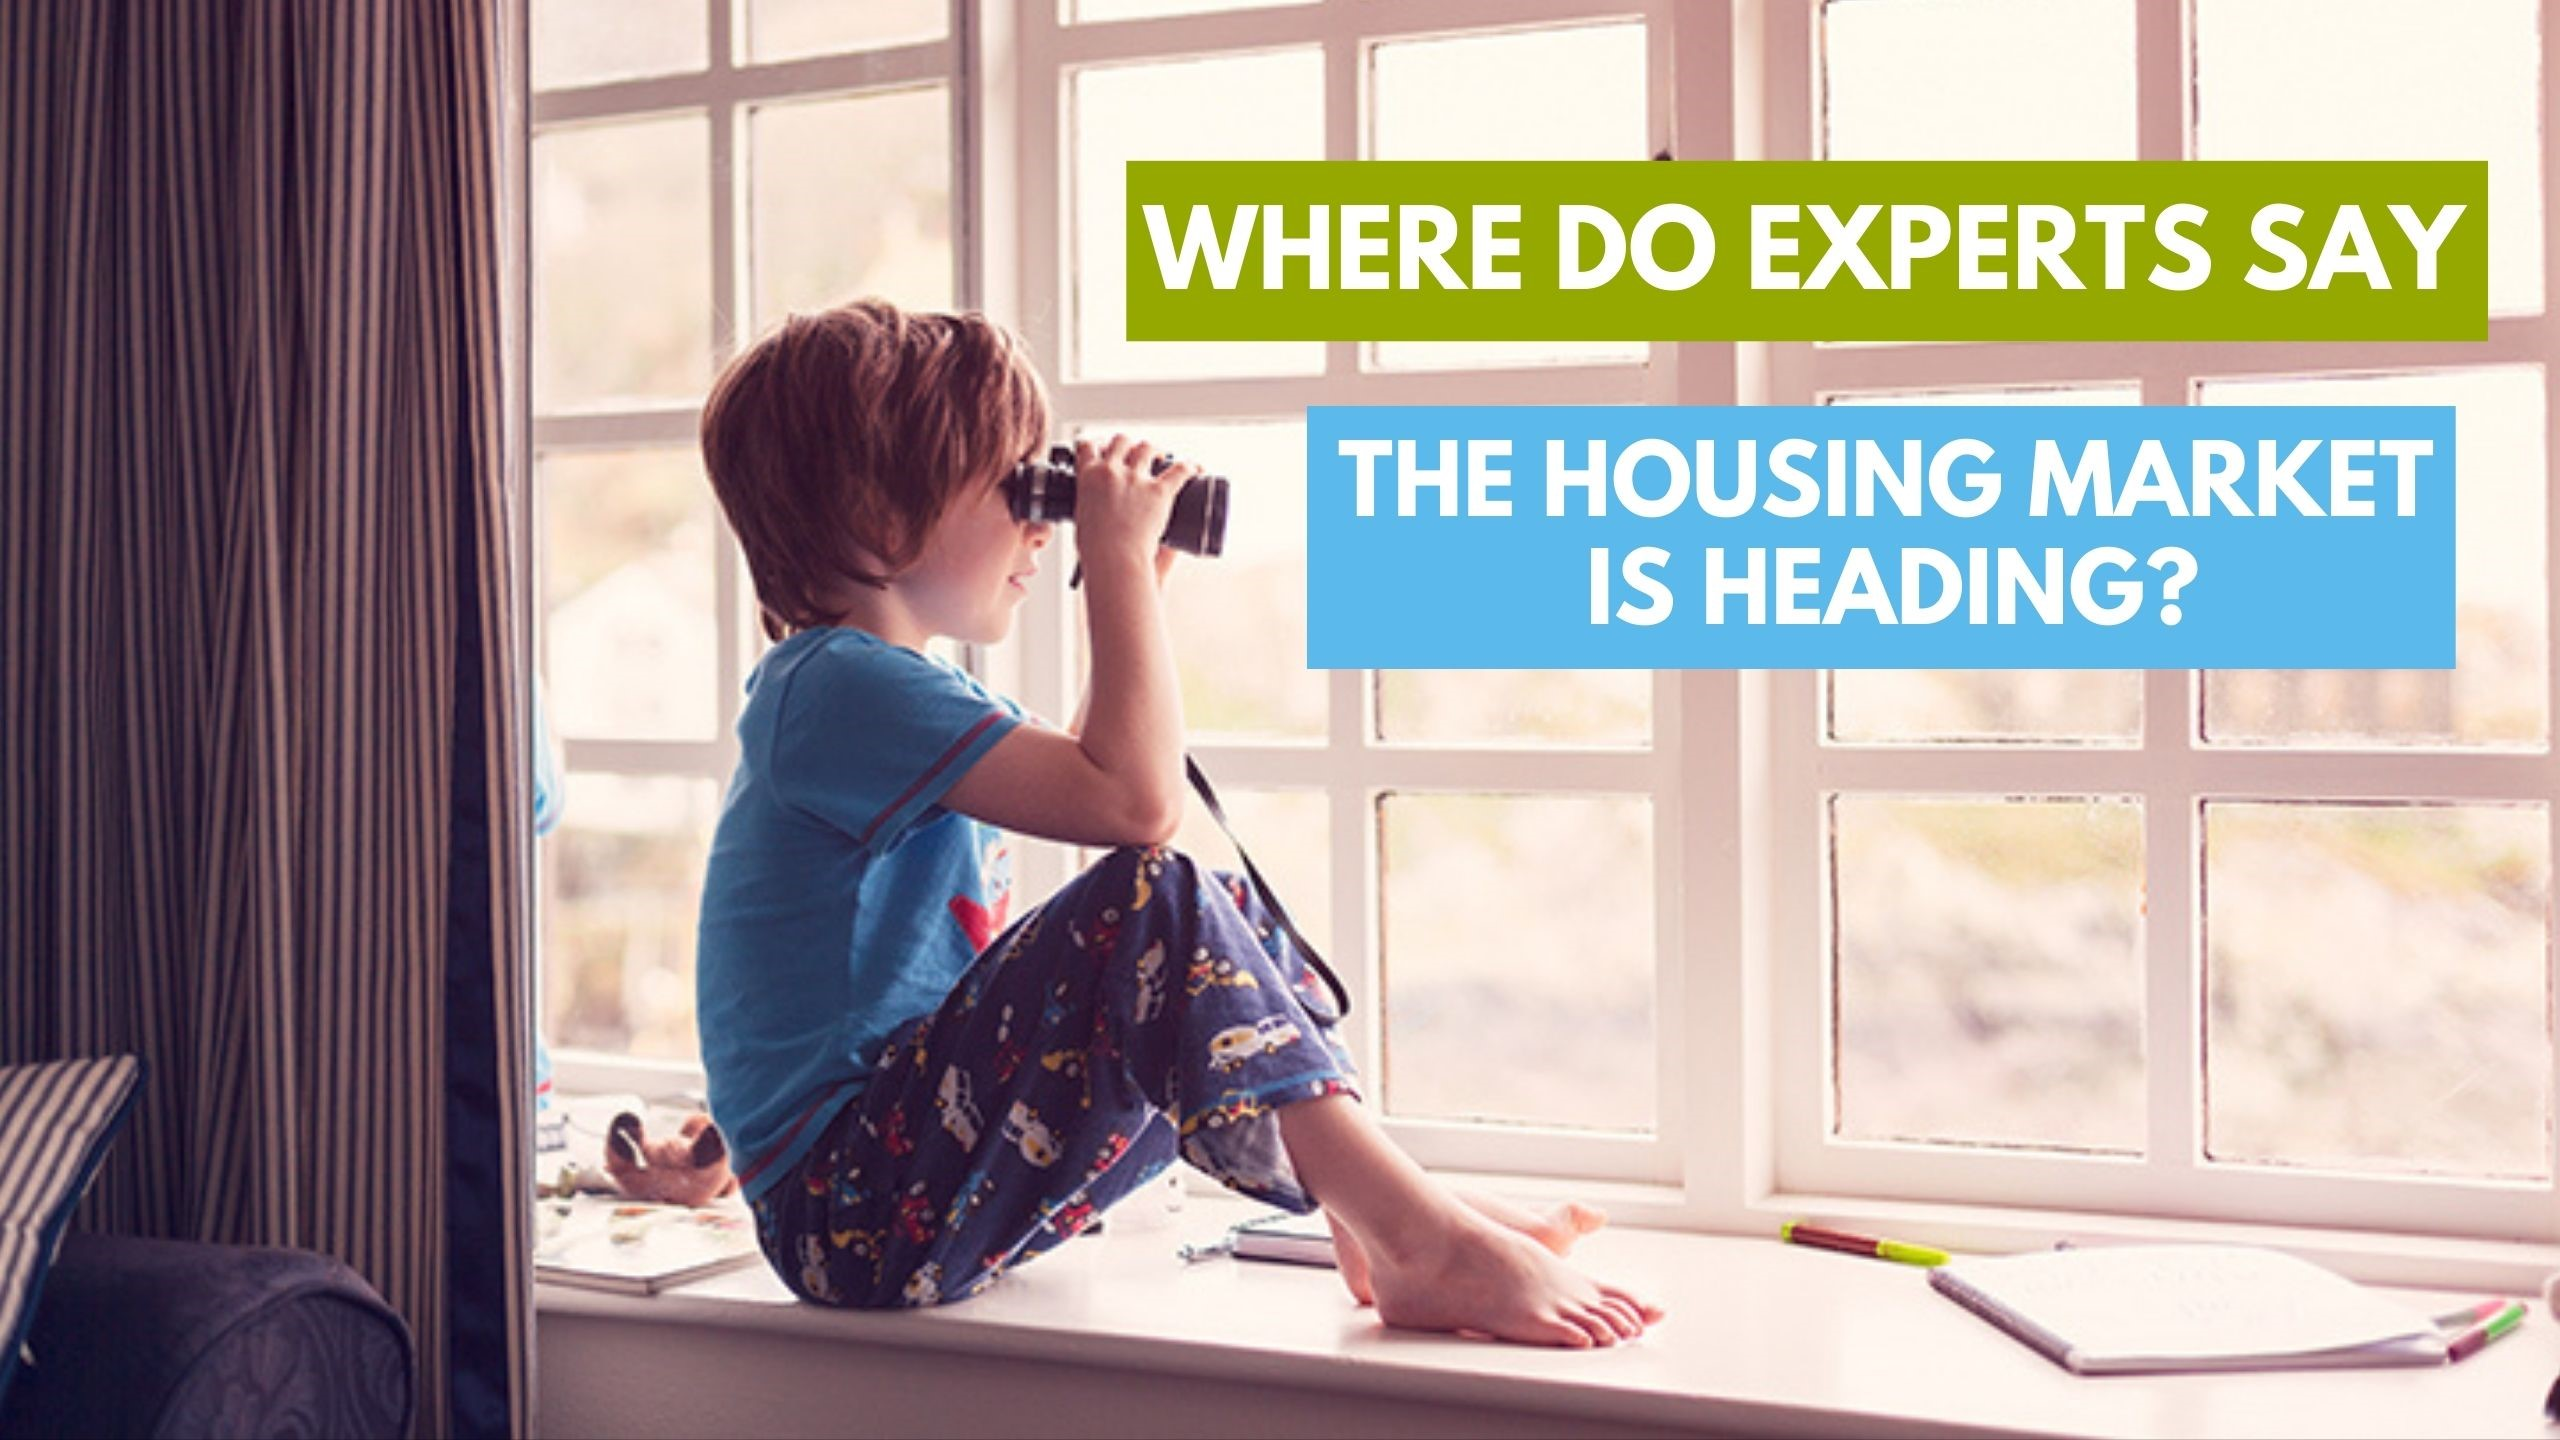 Where is the housing market heading?